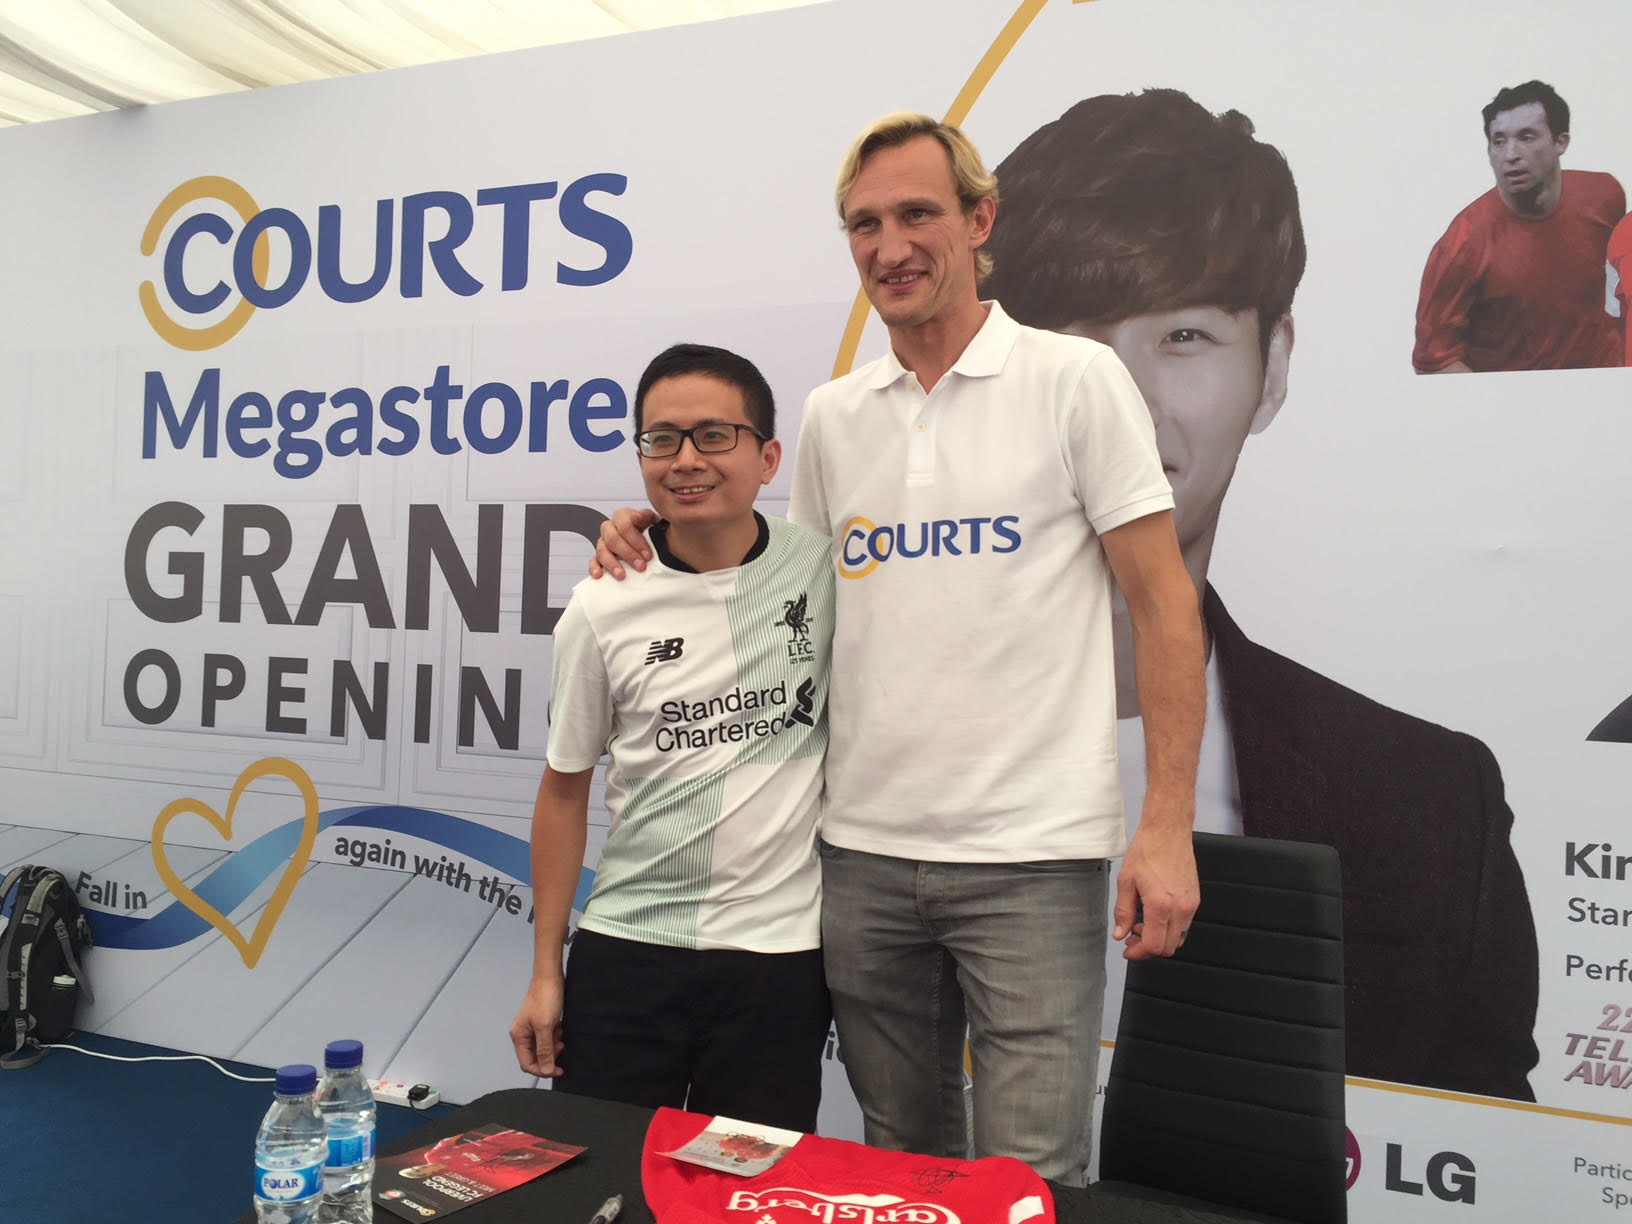 Sami Hyppia at COURTS Megastore